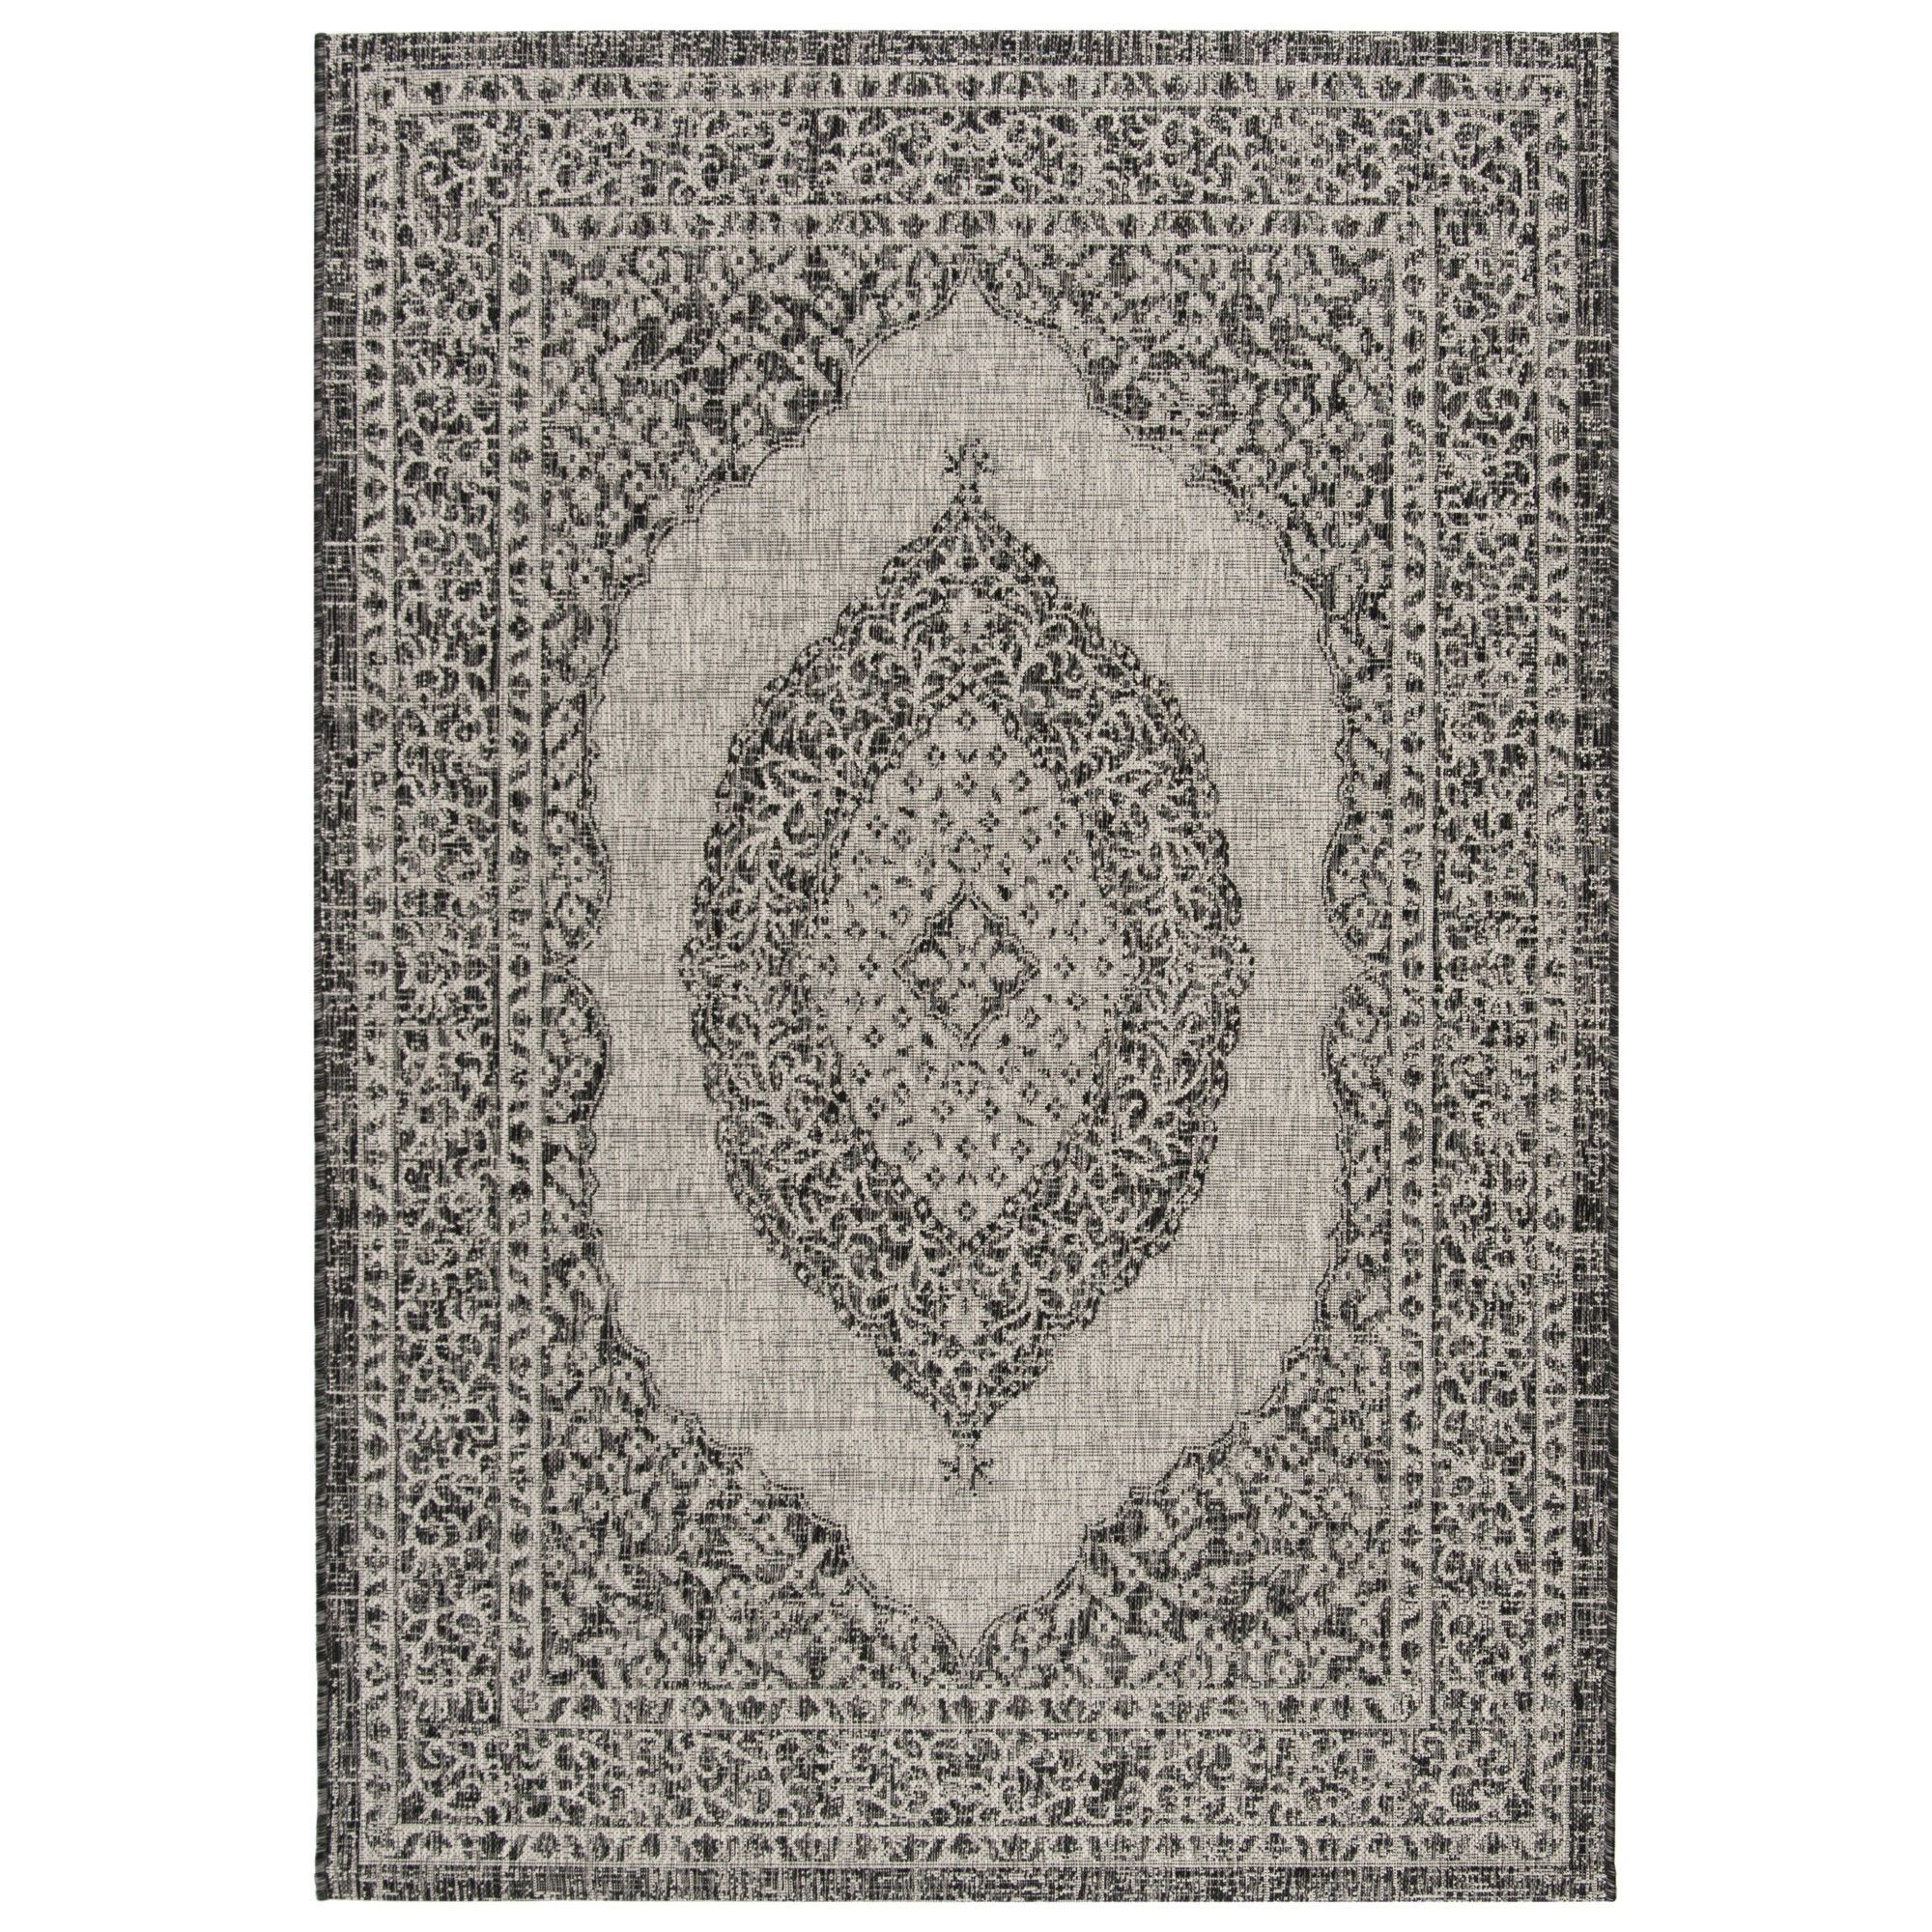 Abel 4 X 5 7 Indoor Outdoor Rug Black Safavieh Size 4 X5 7 In 2020 Indoor Outdoor Carpet Outdoor Rugs Patio Outdoor Carpet